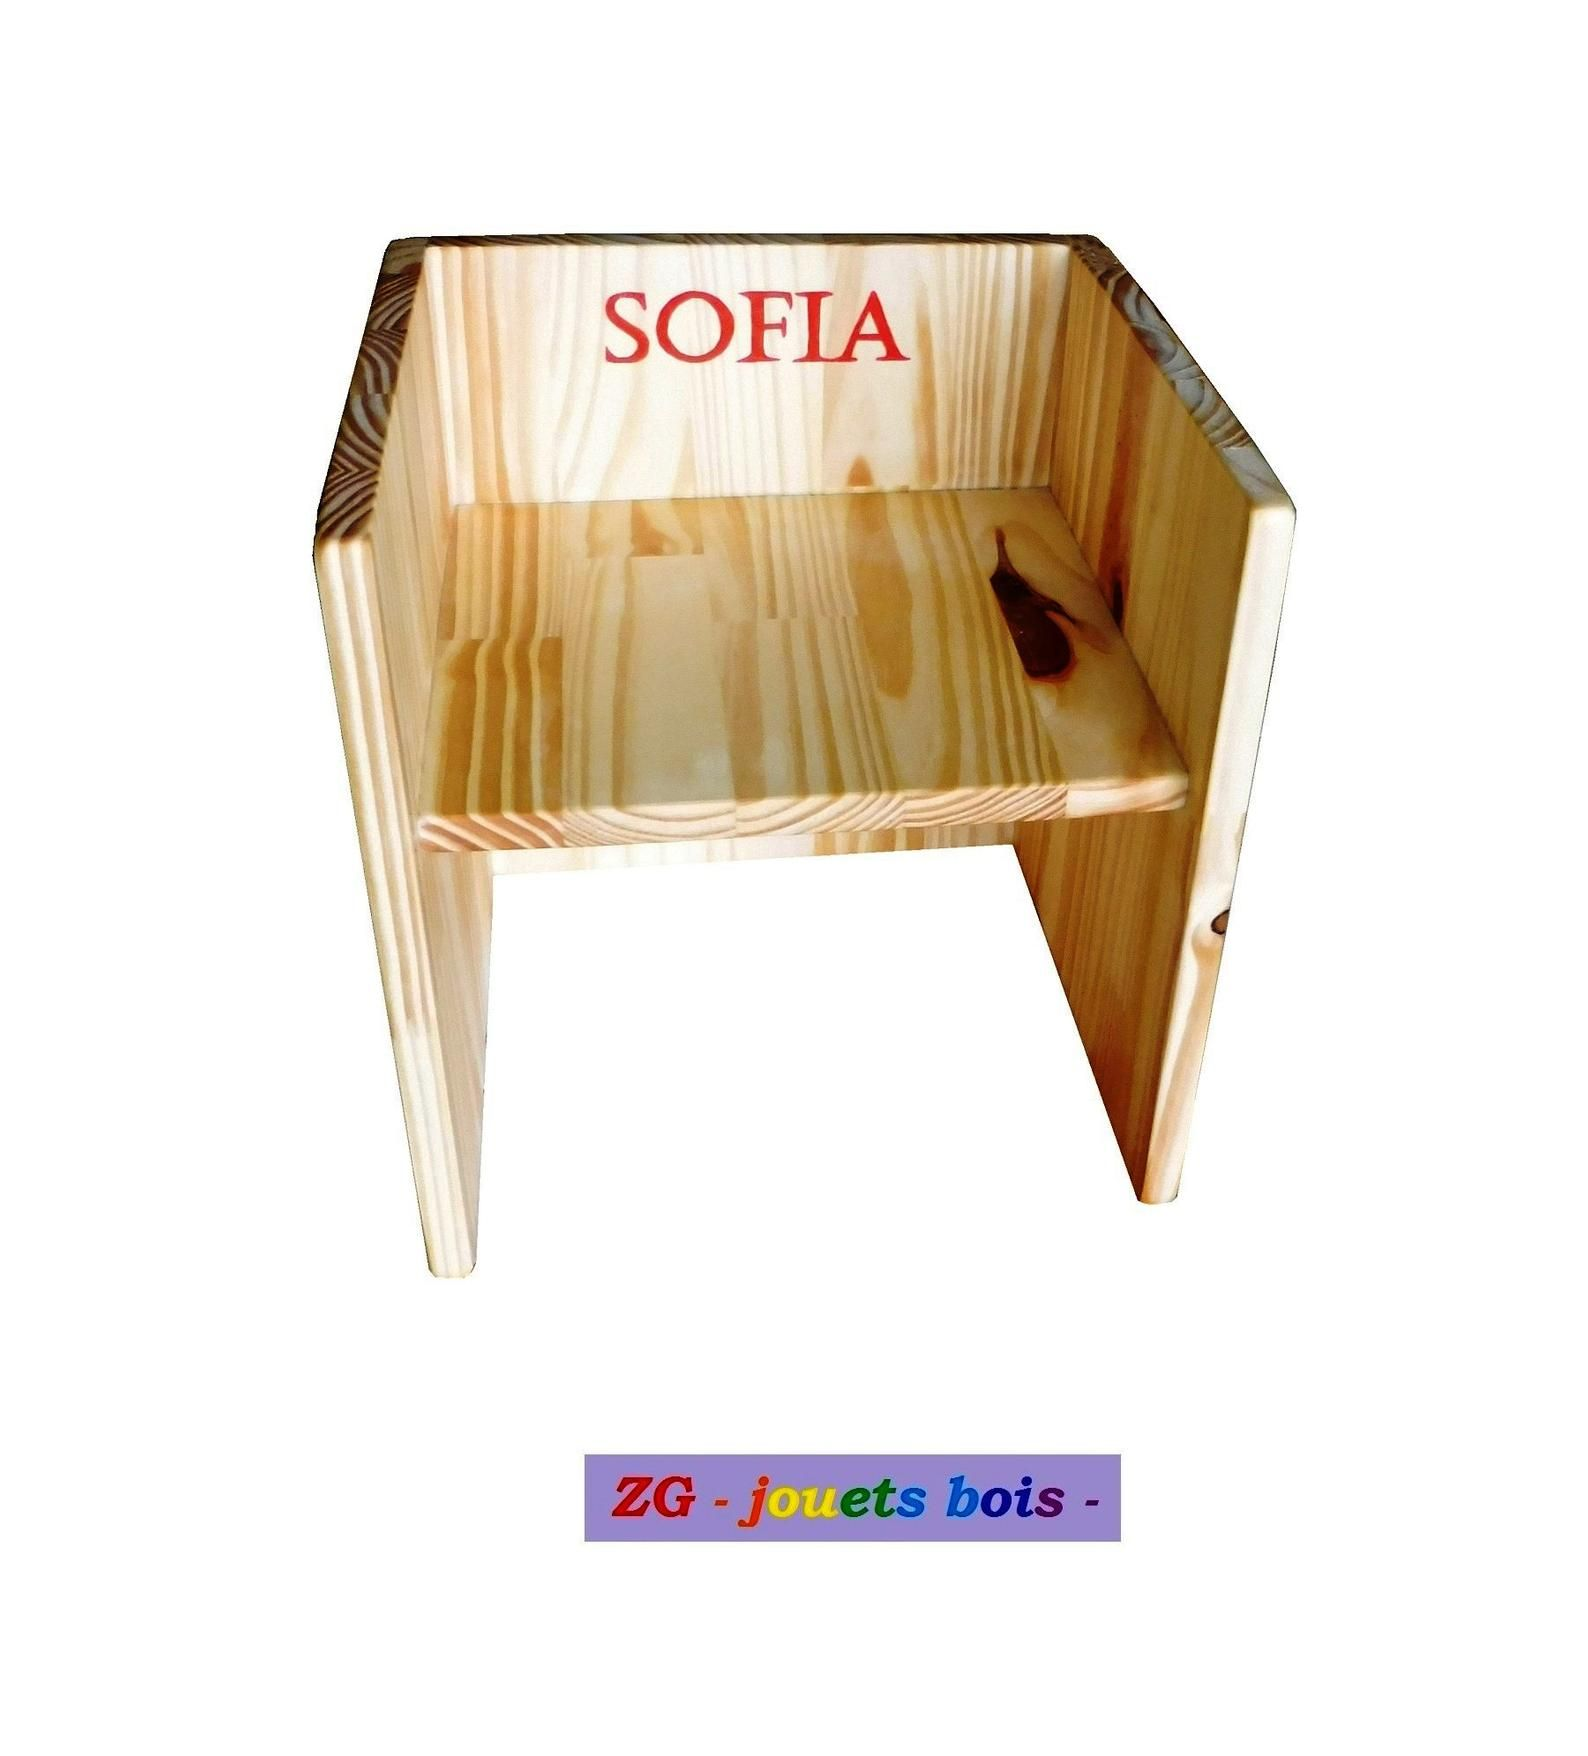 Chair Cube Montessori Scalable Wooden Chair 3primarily 1 2 Seat Heights Side Table Furniture Baby Personalized Inscription Chaises Bois Bois Jouets En Bois